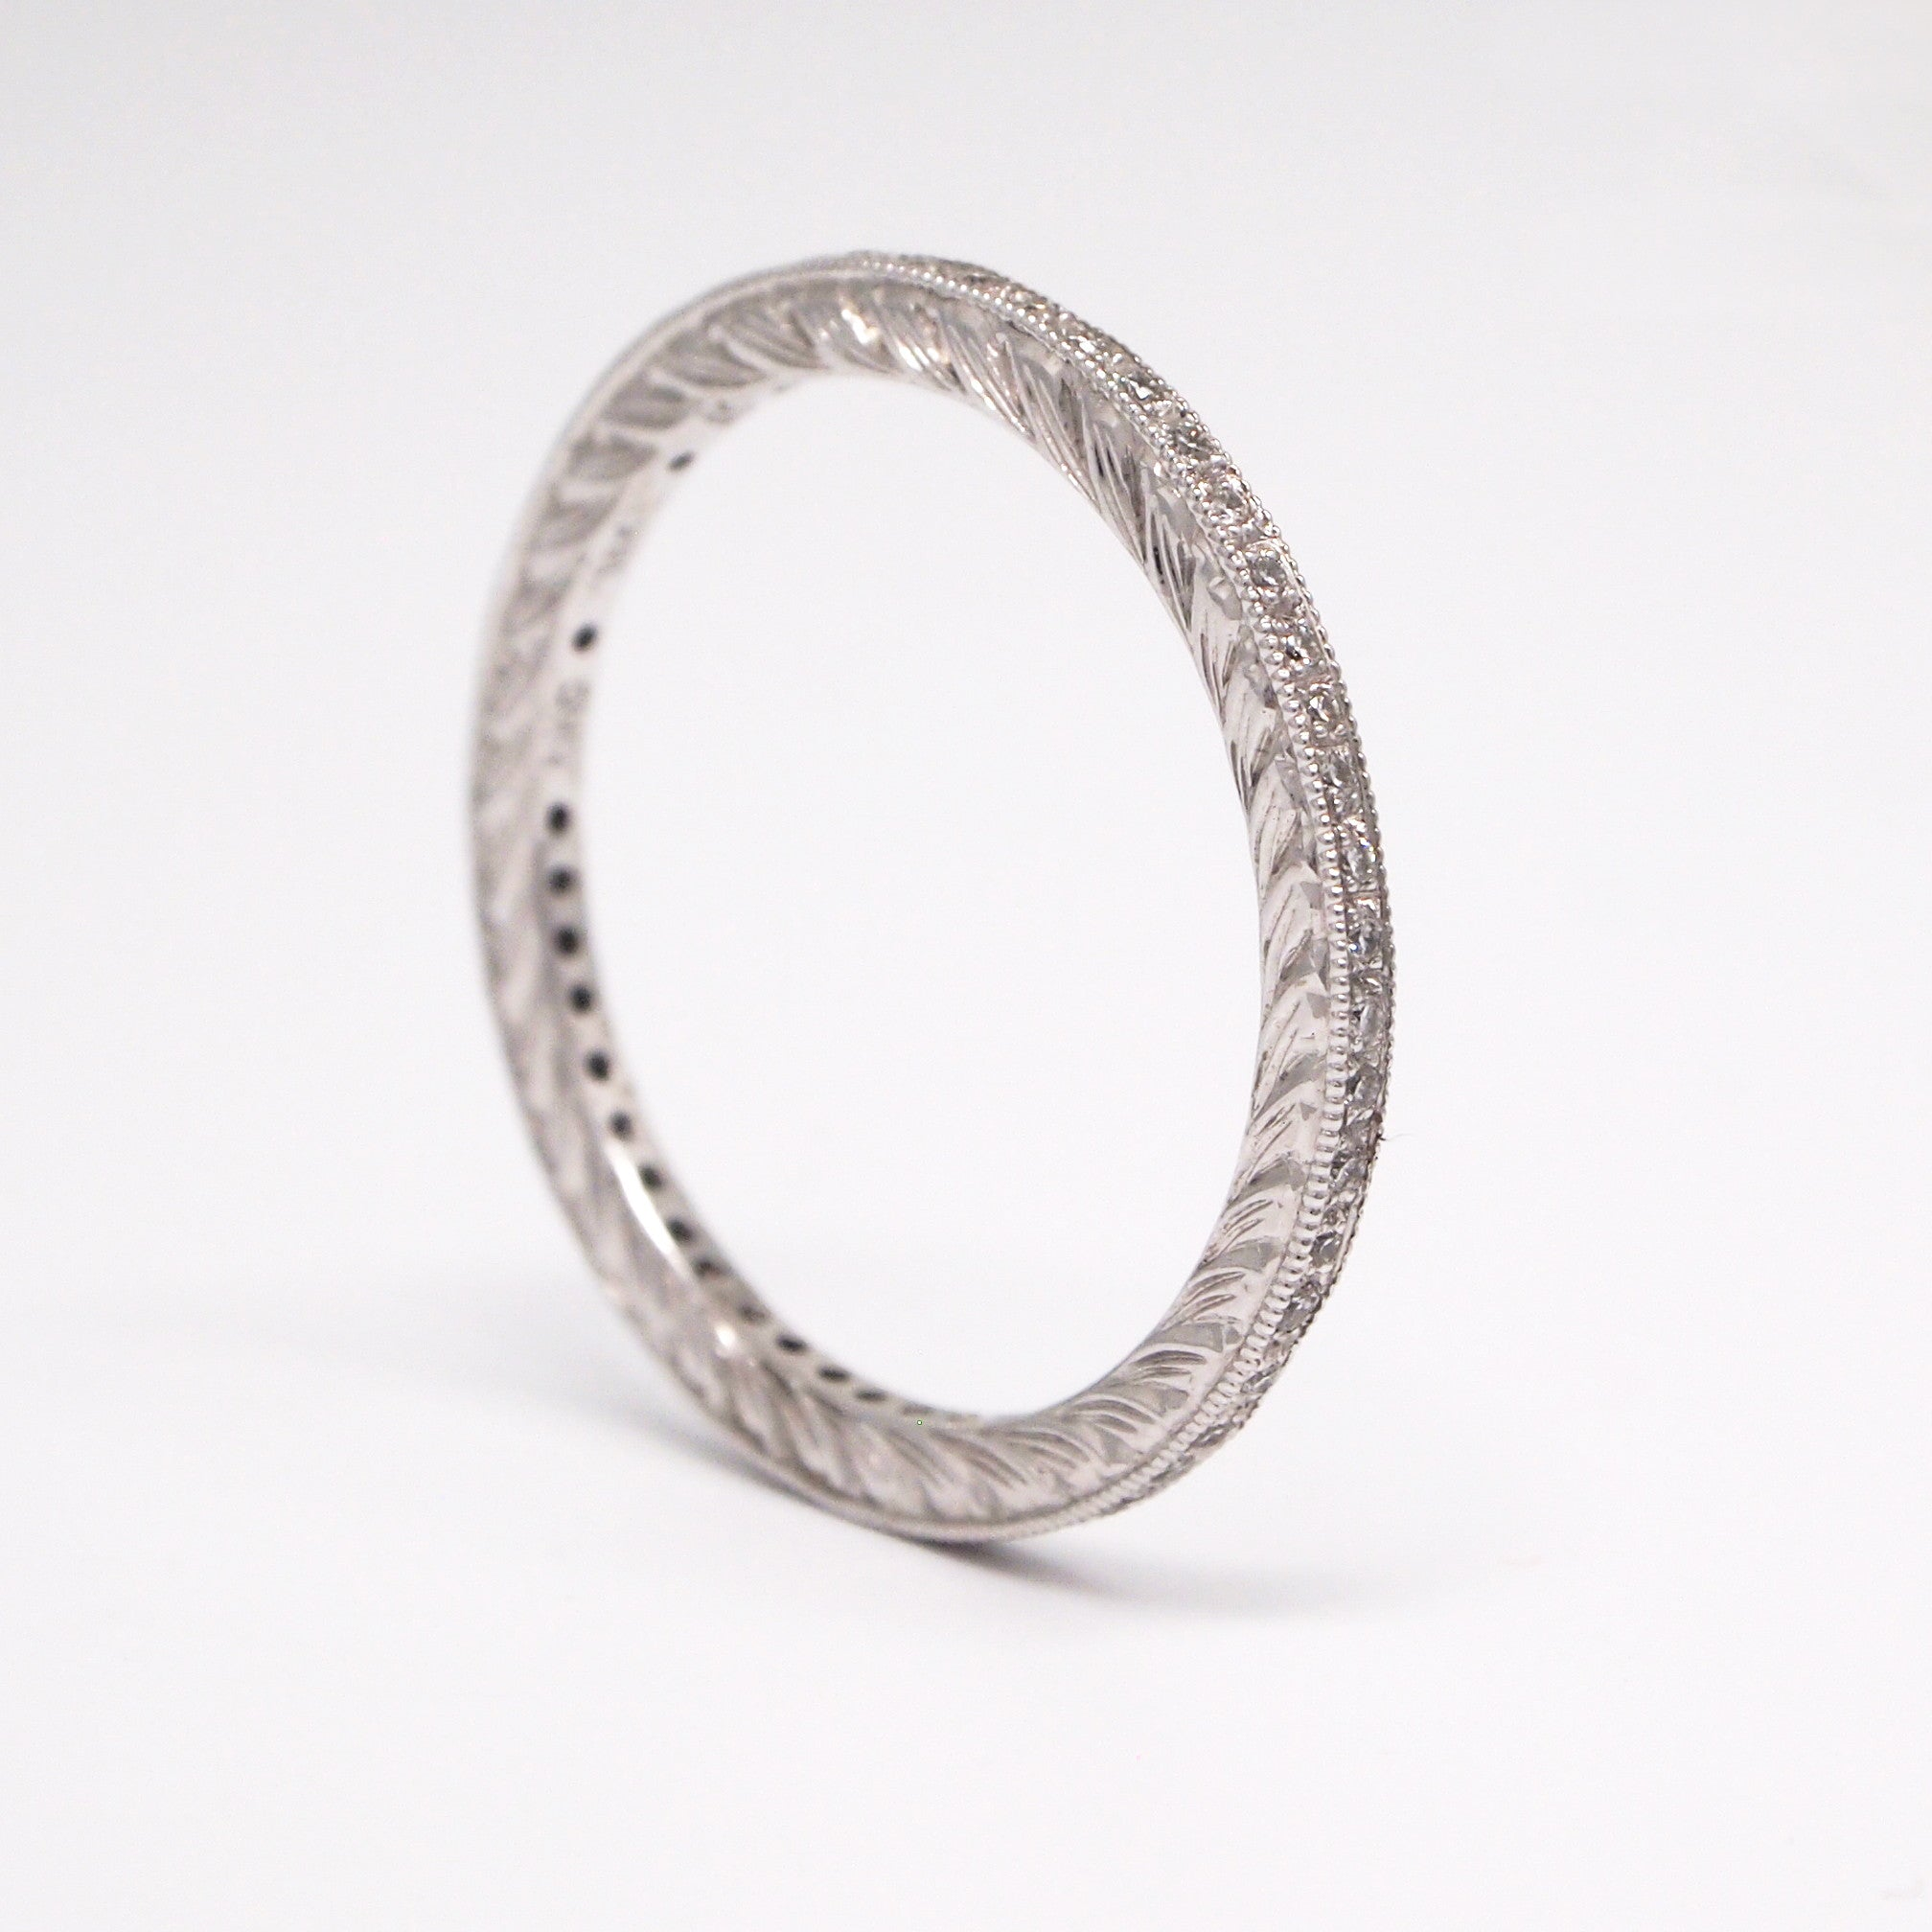 Hand Engraved 18K White Gold Diamond Eternity Wedding Band With Diamonds Weighing A Total Of